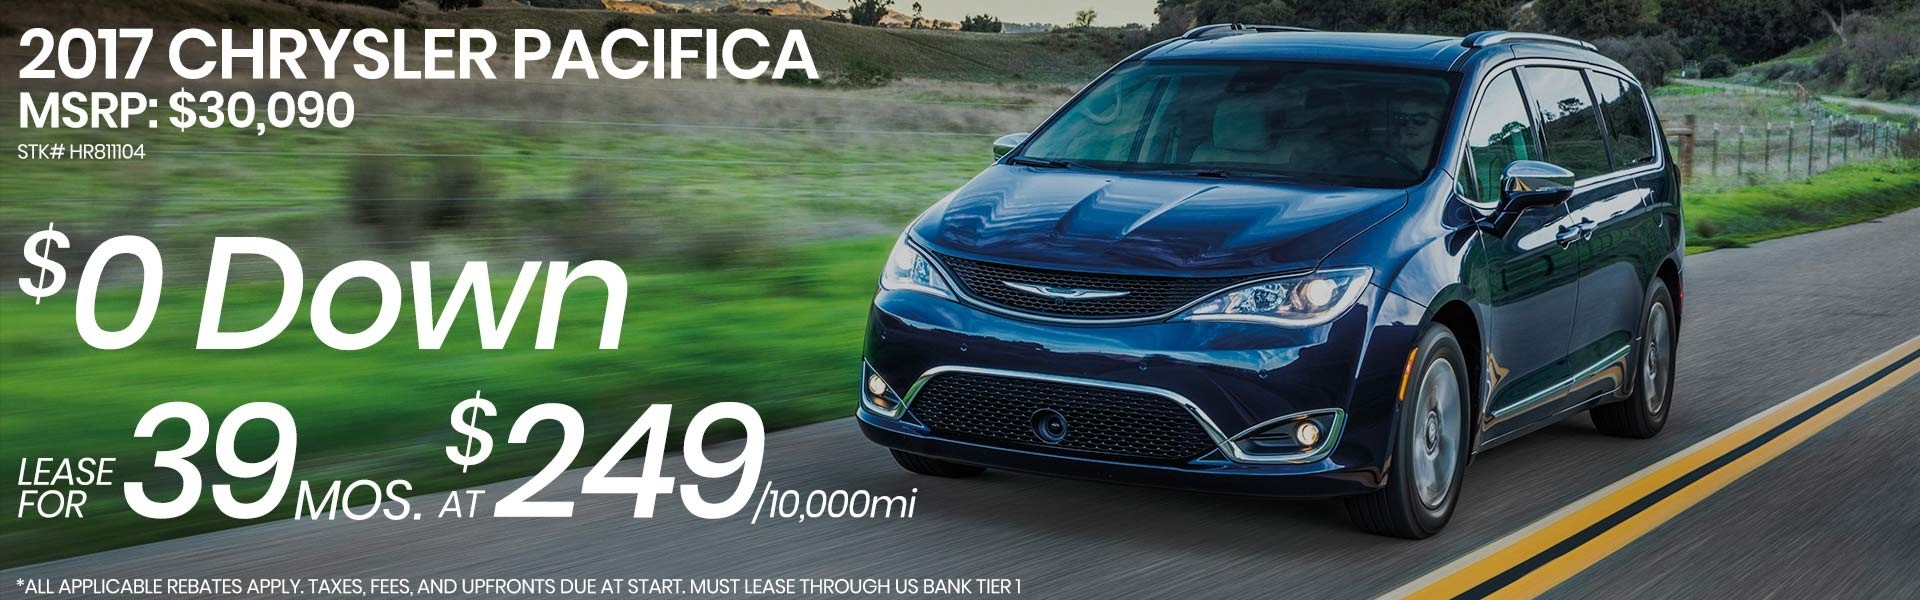 chrysler-pacifica-banner